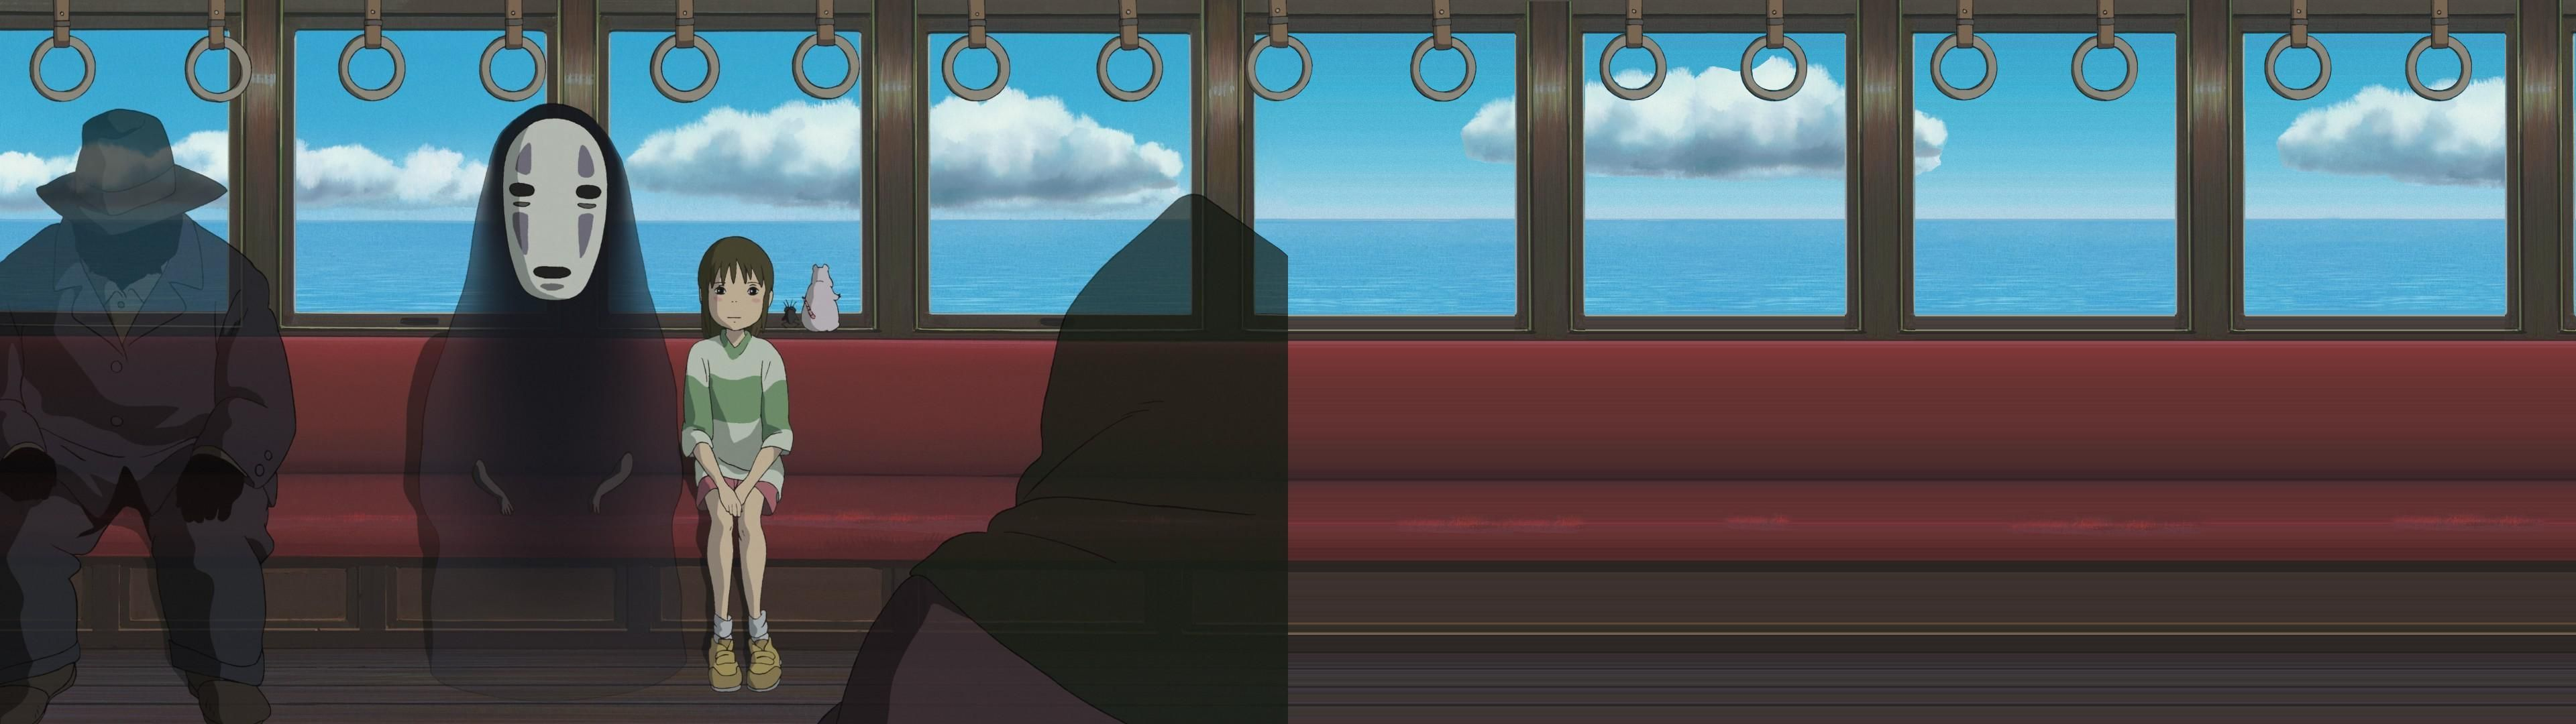 Spirited Away [3840x1080] via Classy Bro (With images